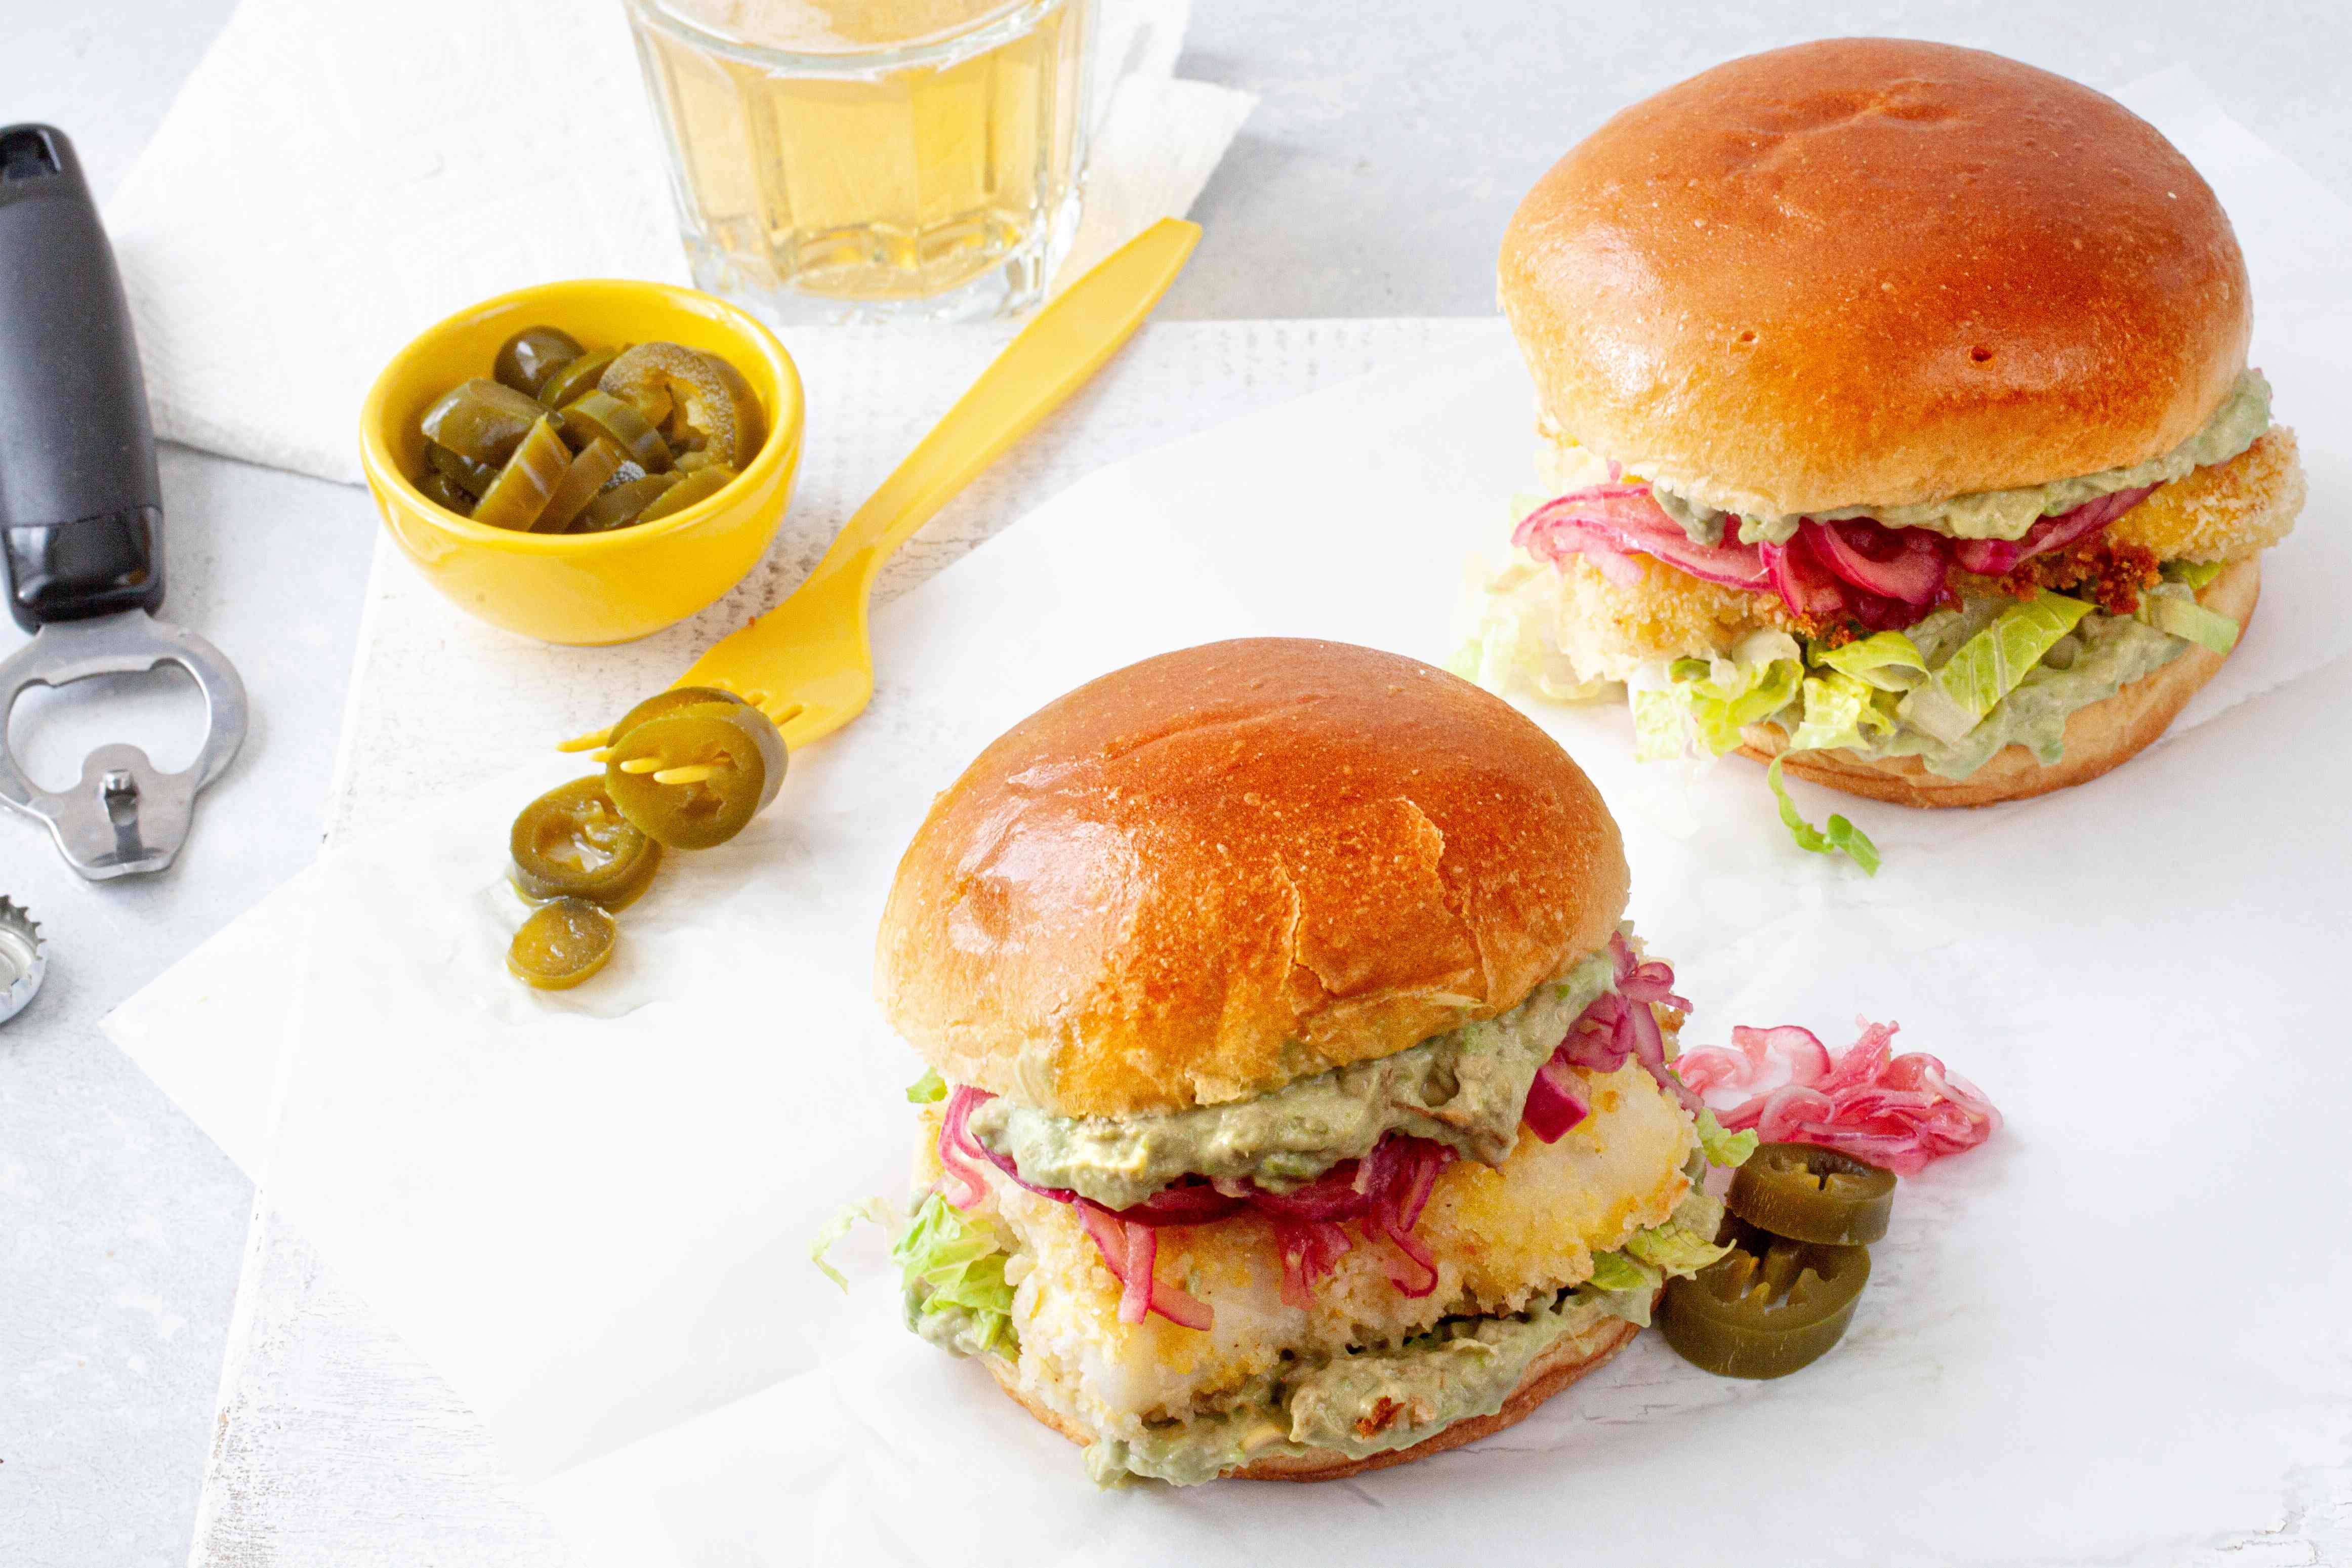 Crispy Oven Baked Fish Sandwiches